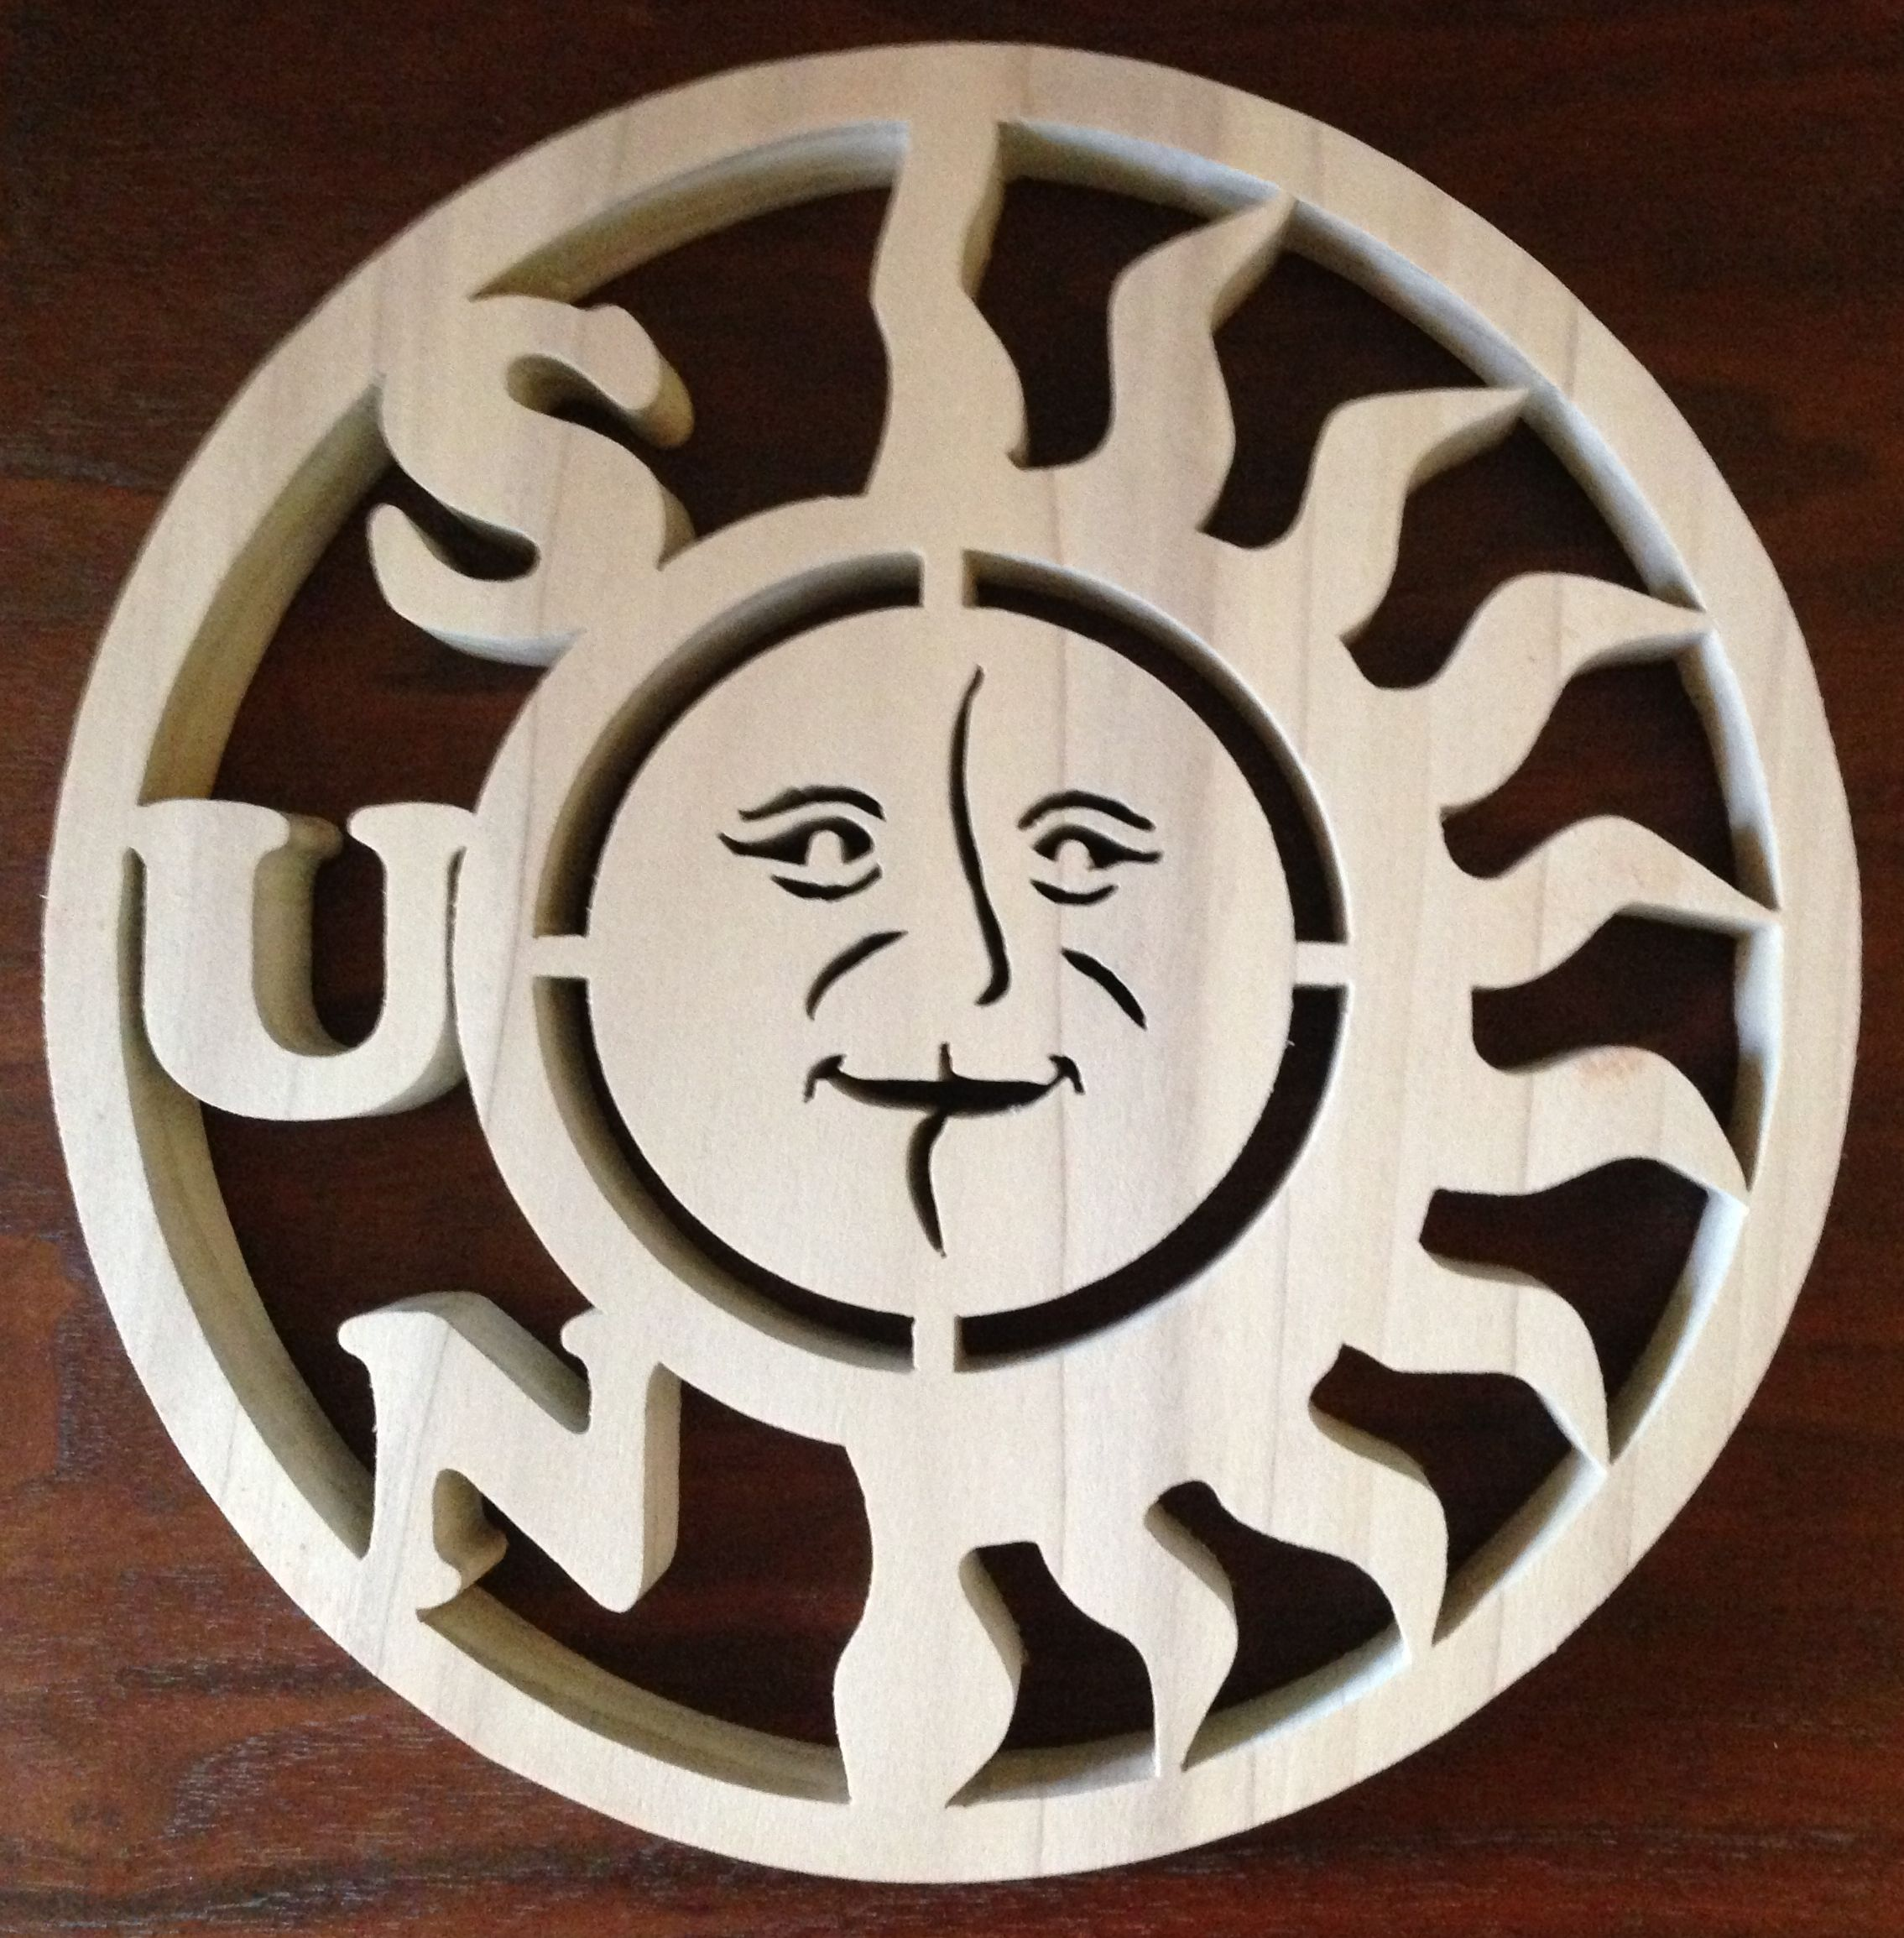 The Sun, pattern by Ratilal.